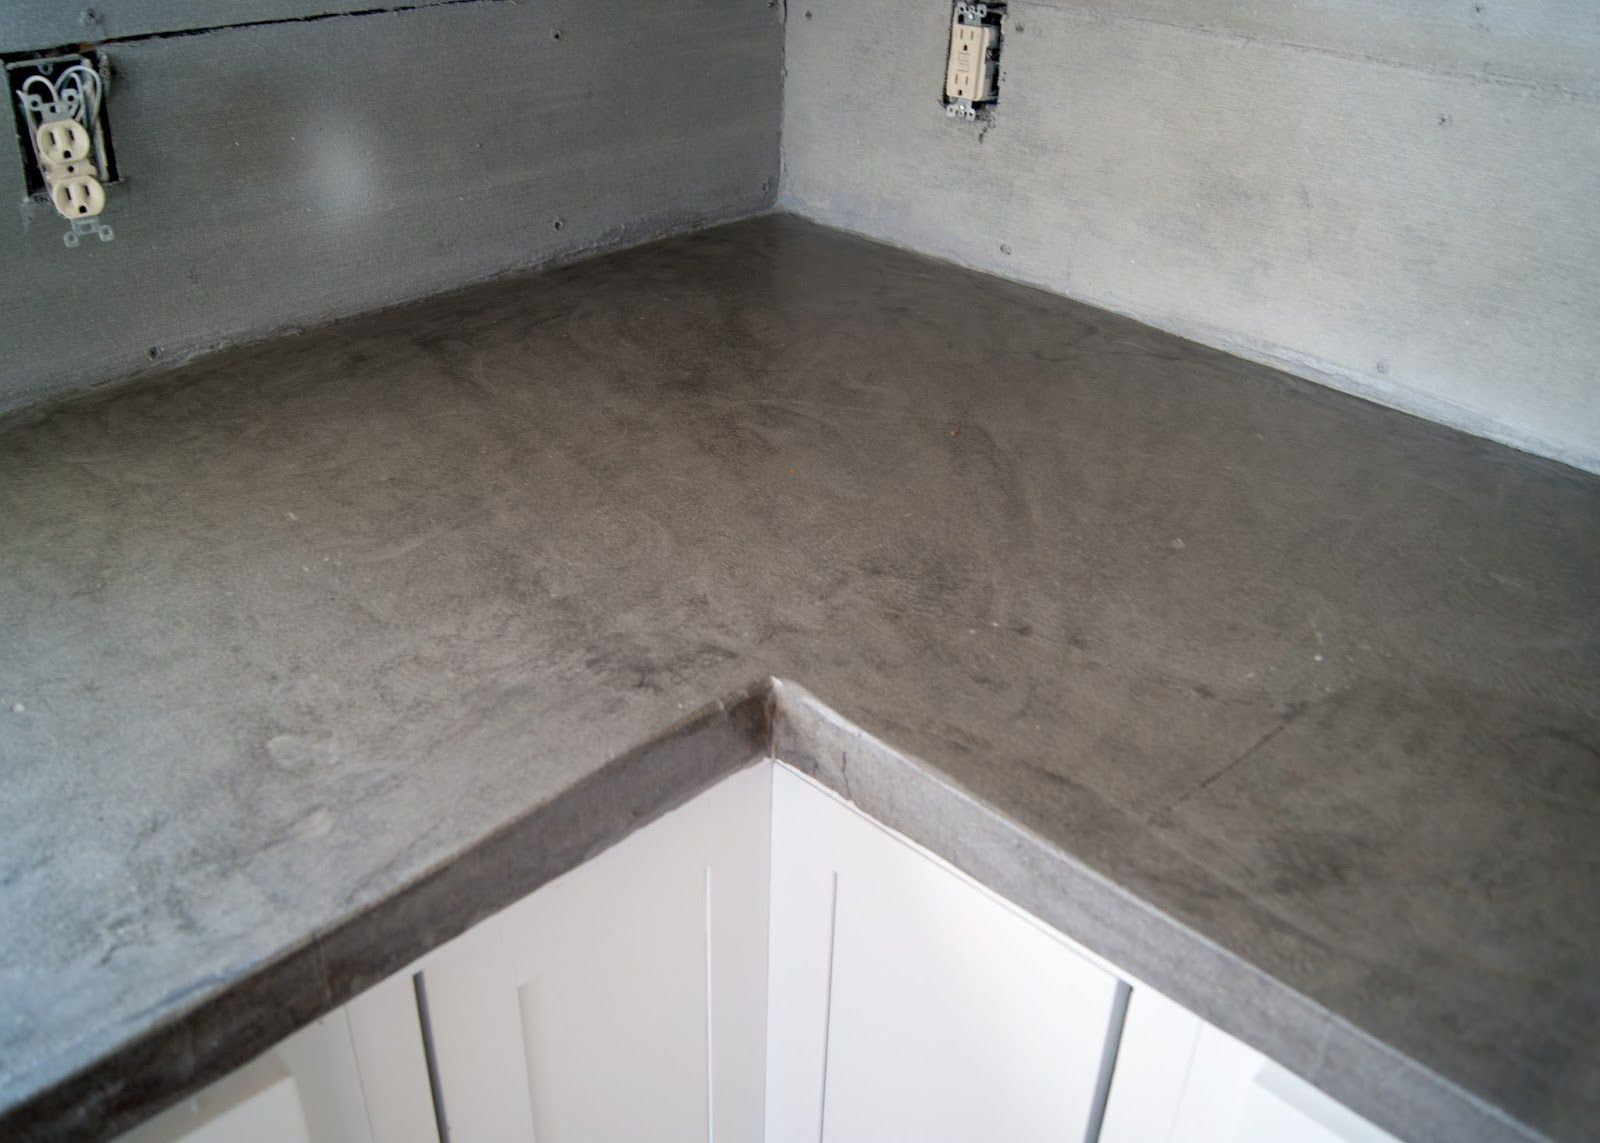 Diy Concrete Counters Poured Over Laminate In 2020 Diy Concrete Countertops Diy Concrete